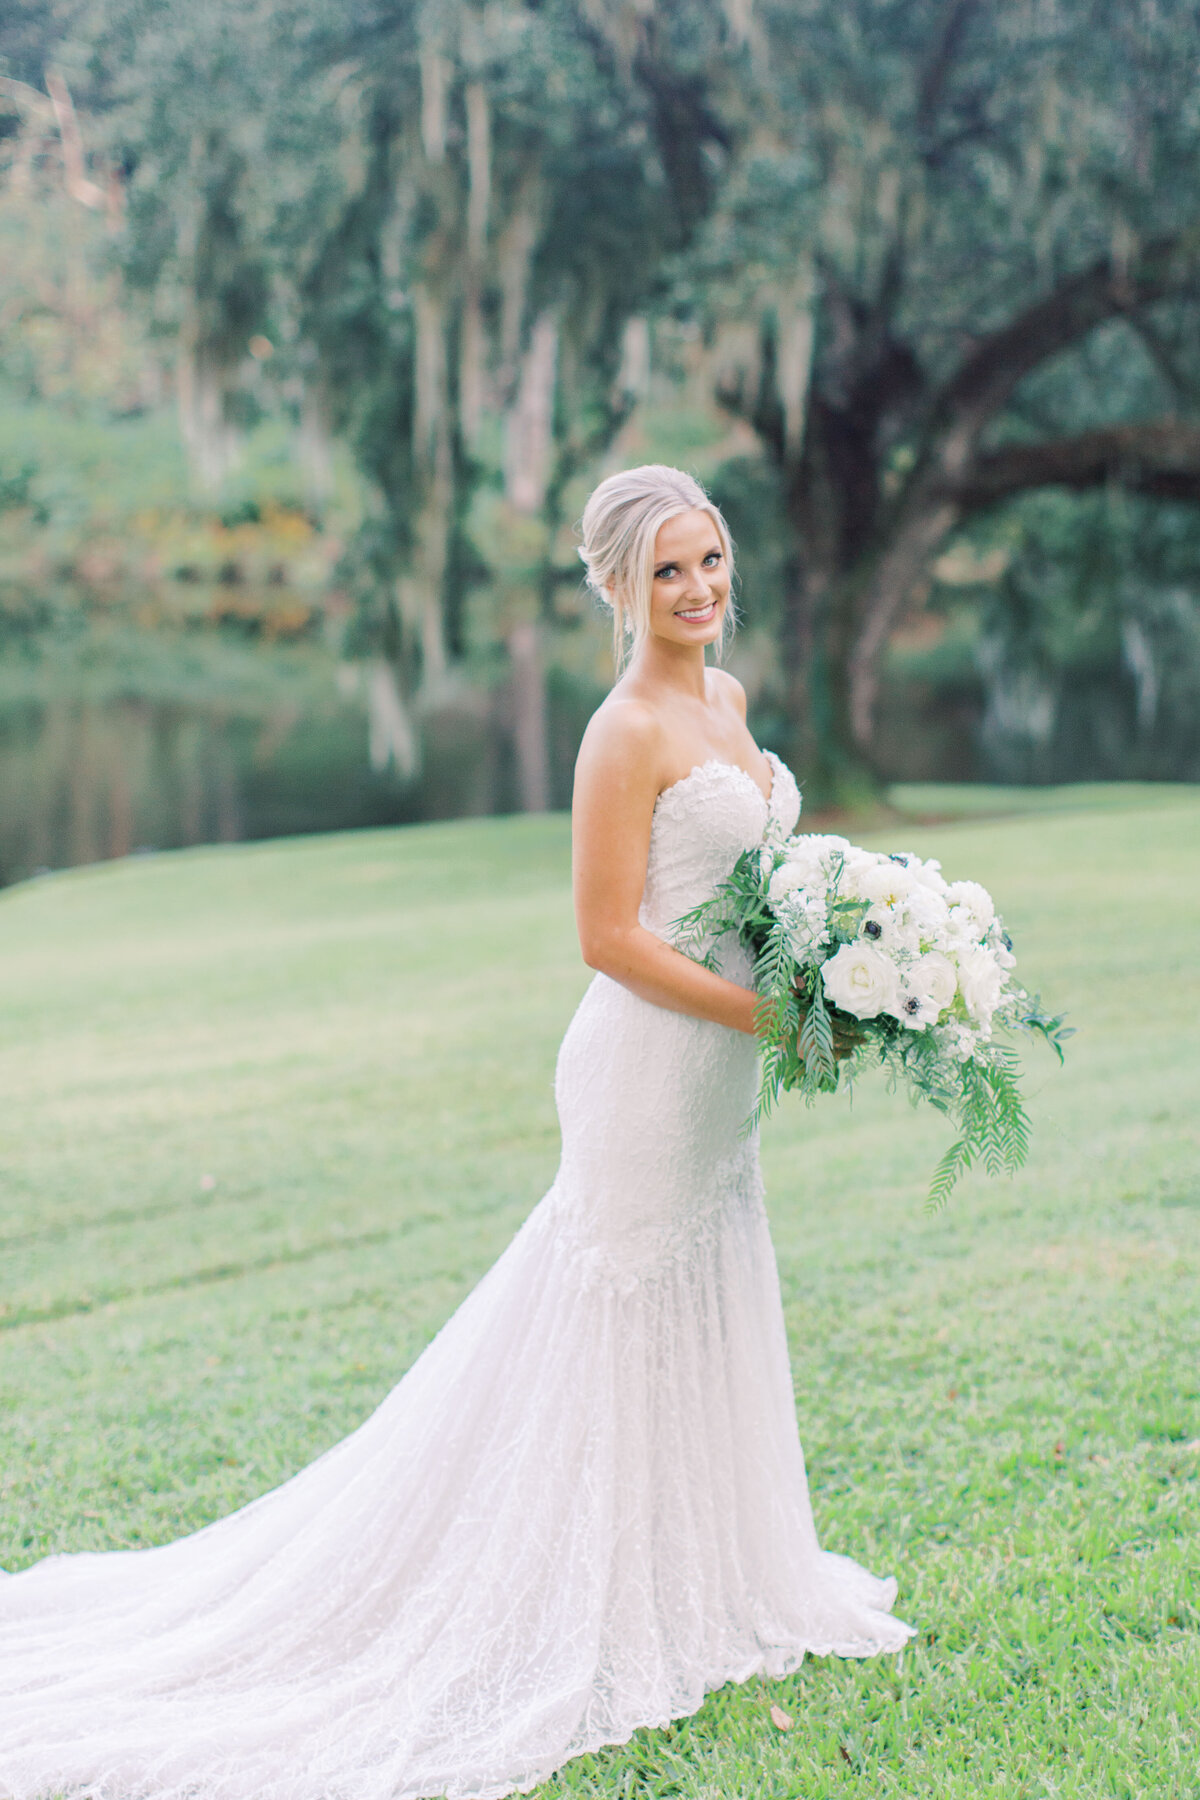 Melton_Wedding__Middleton_Place_Plantation_Charleston_South_Carolina_Jacksonville_Florida_Devon_Donnahoo_Photography__0278